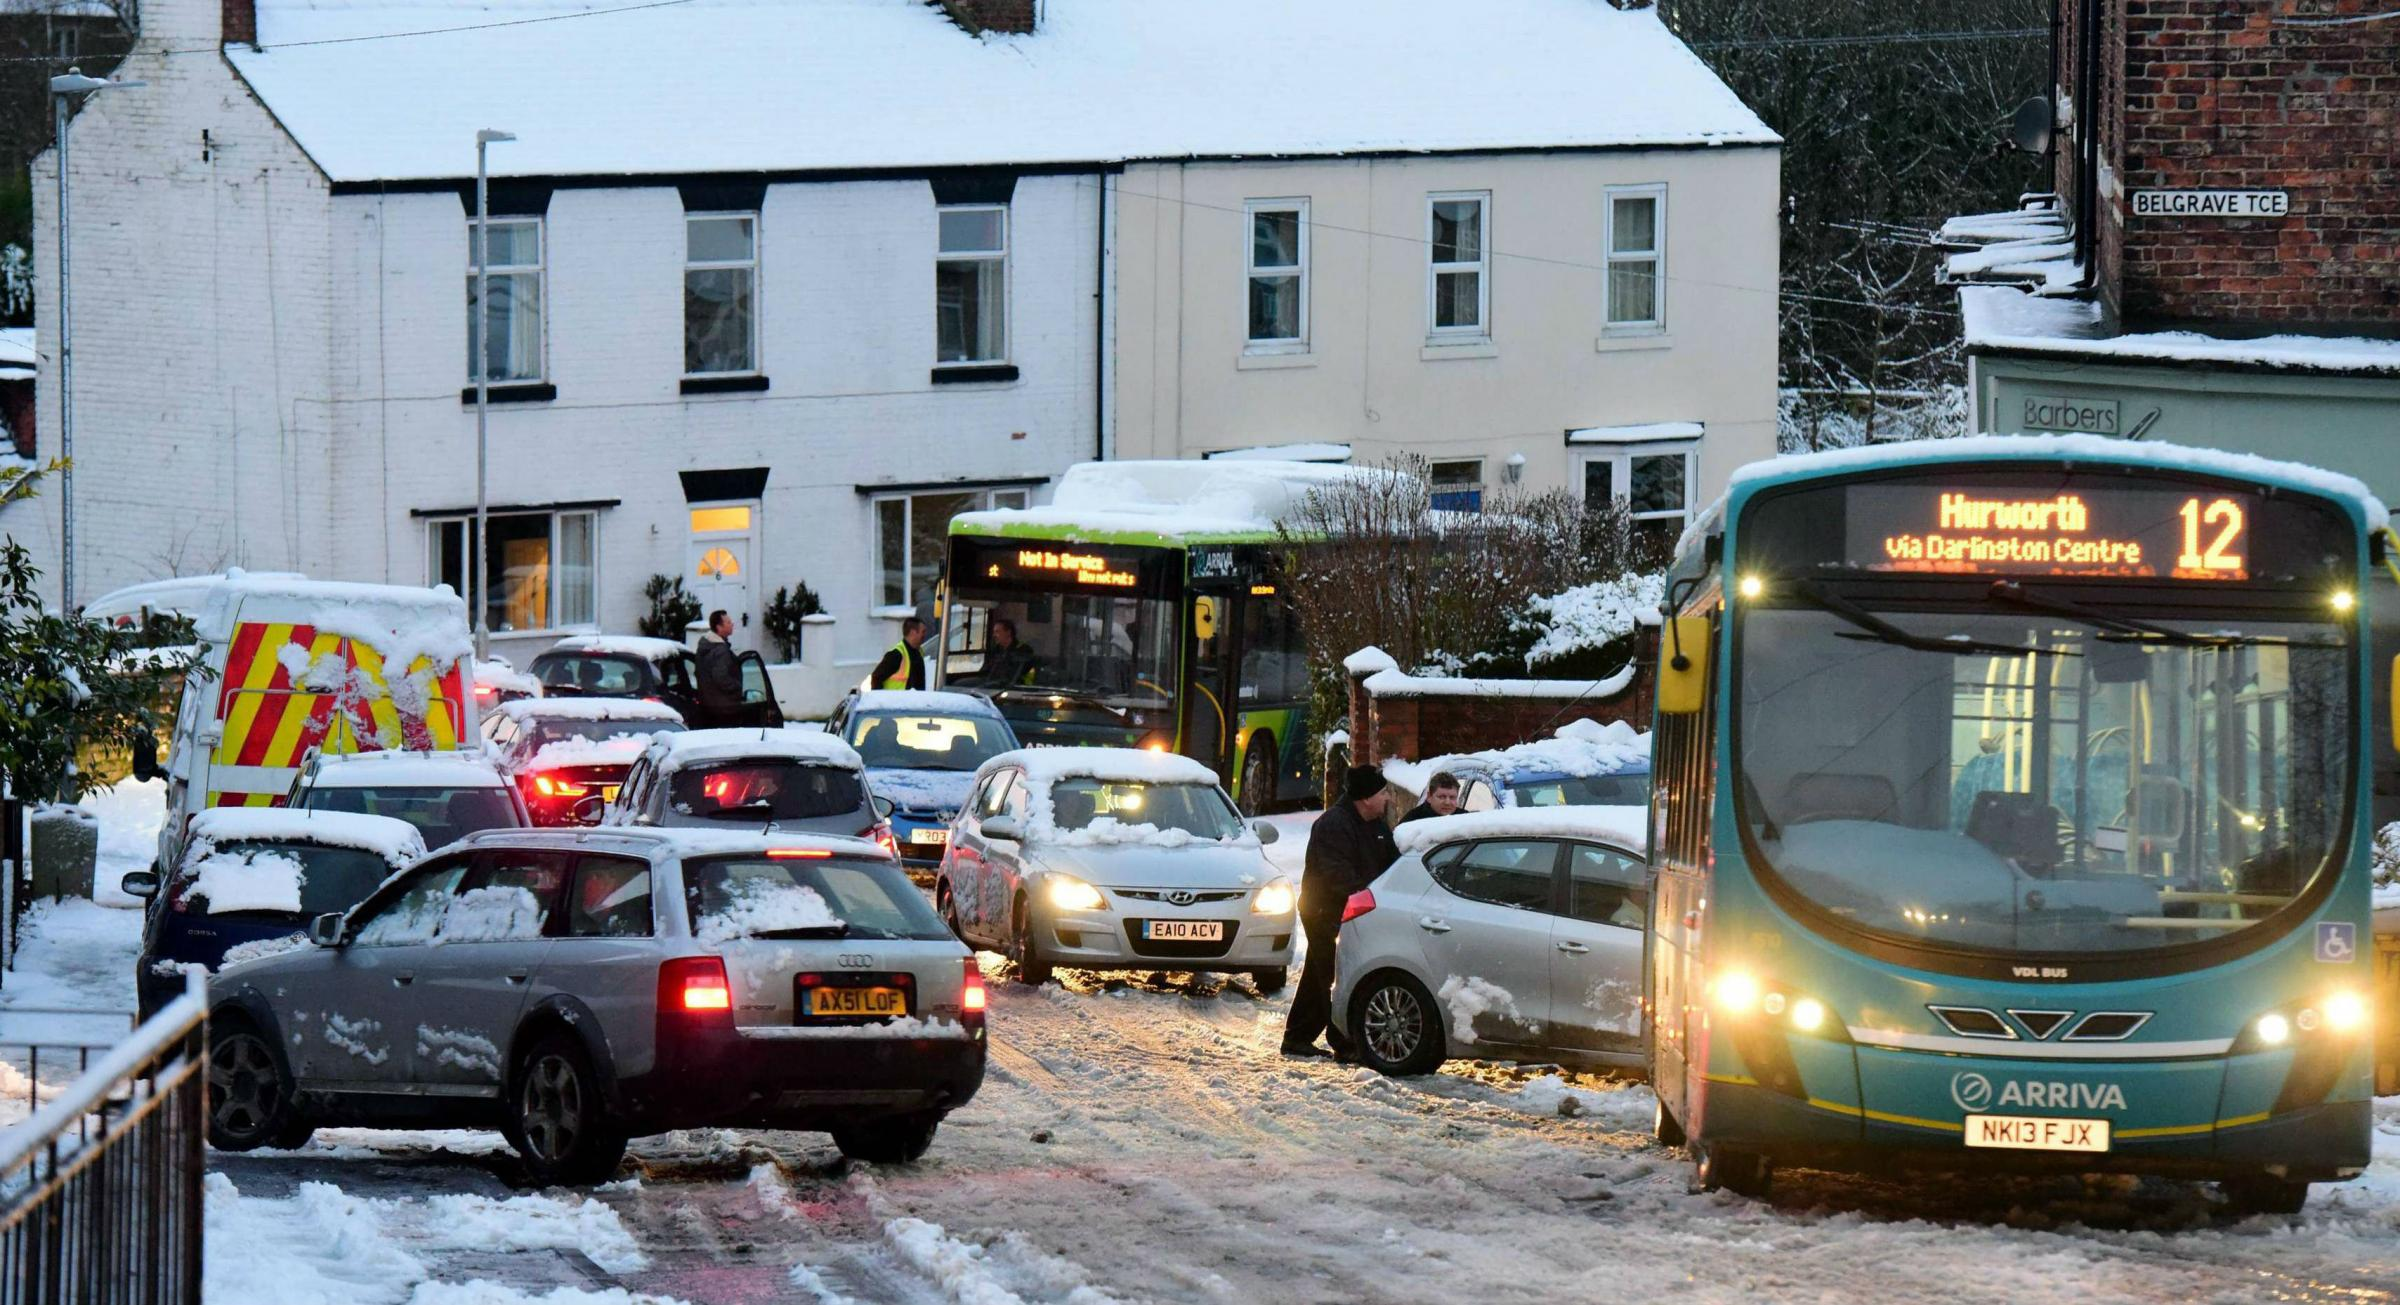 Traffic tries to negotiate its way through Hurworth. Picture: NORTH NEWS